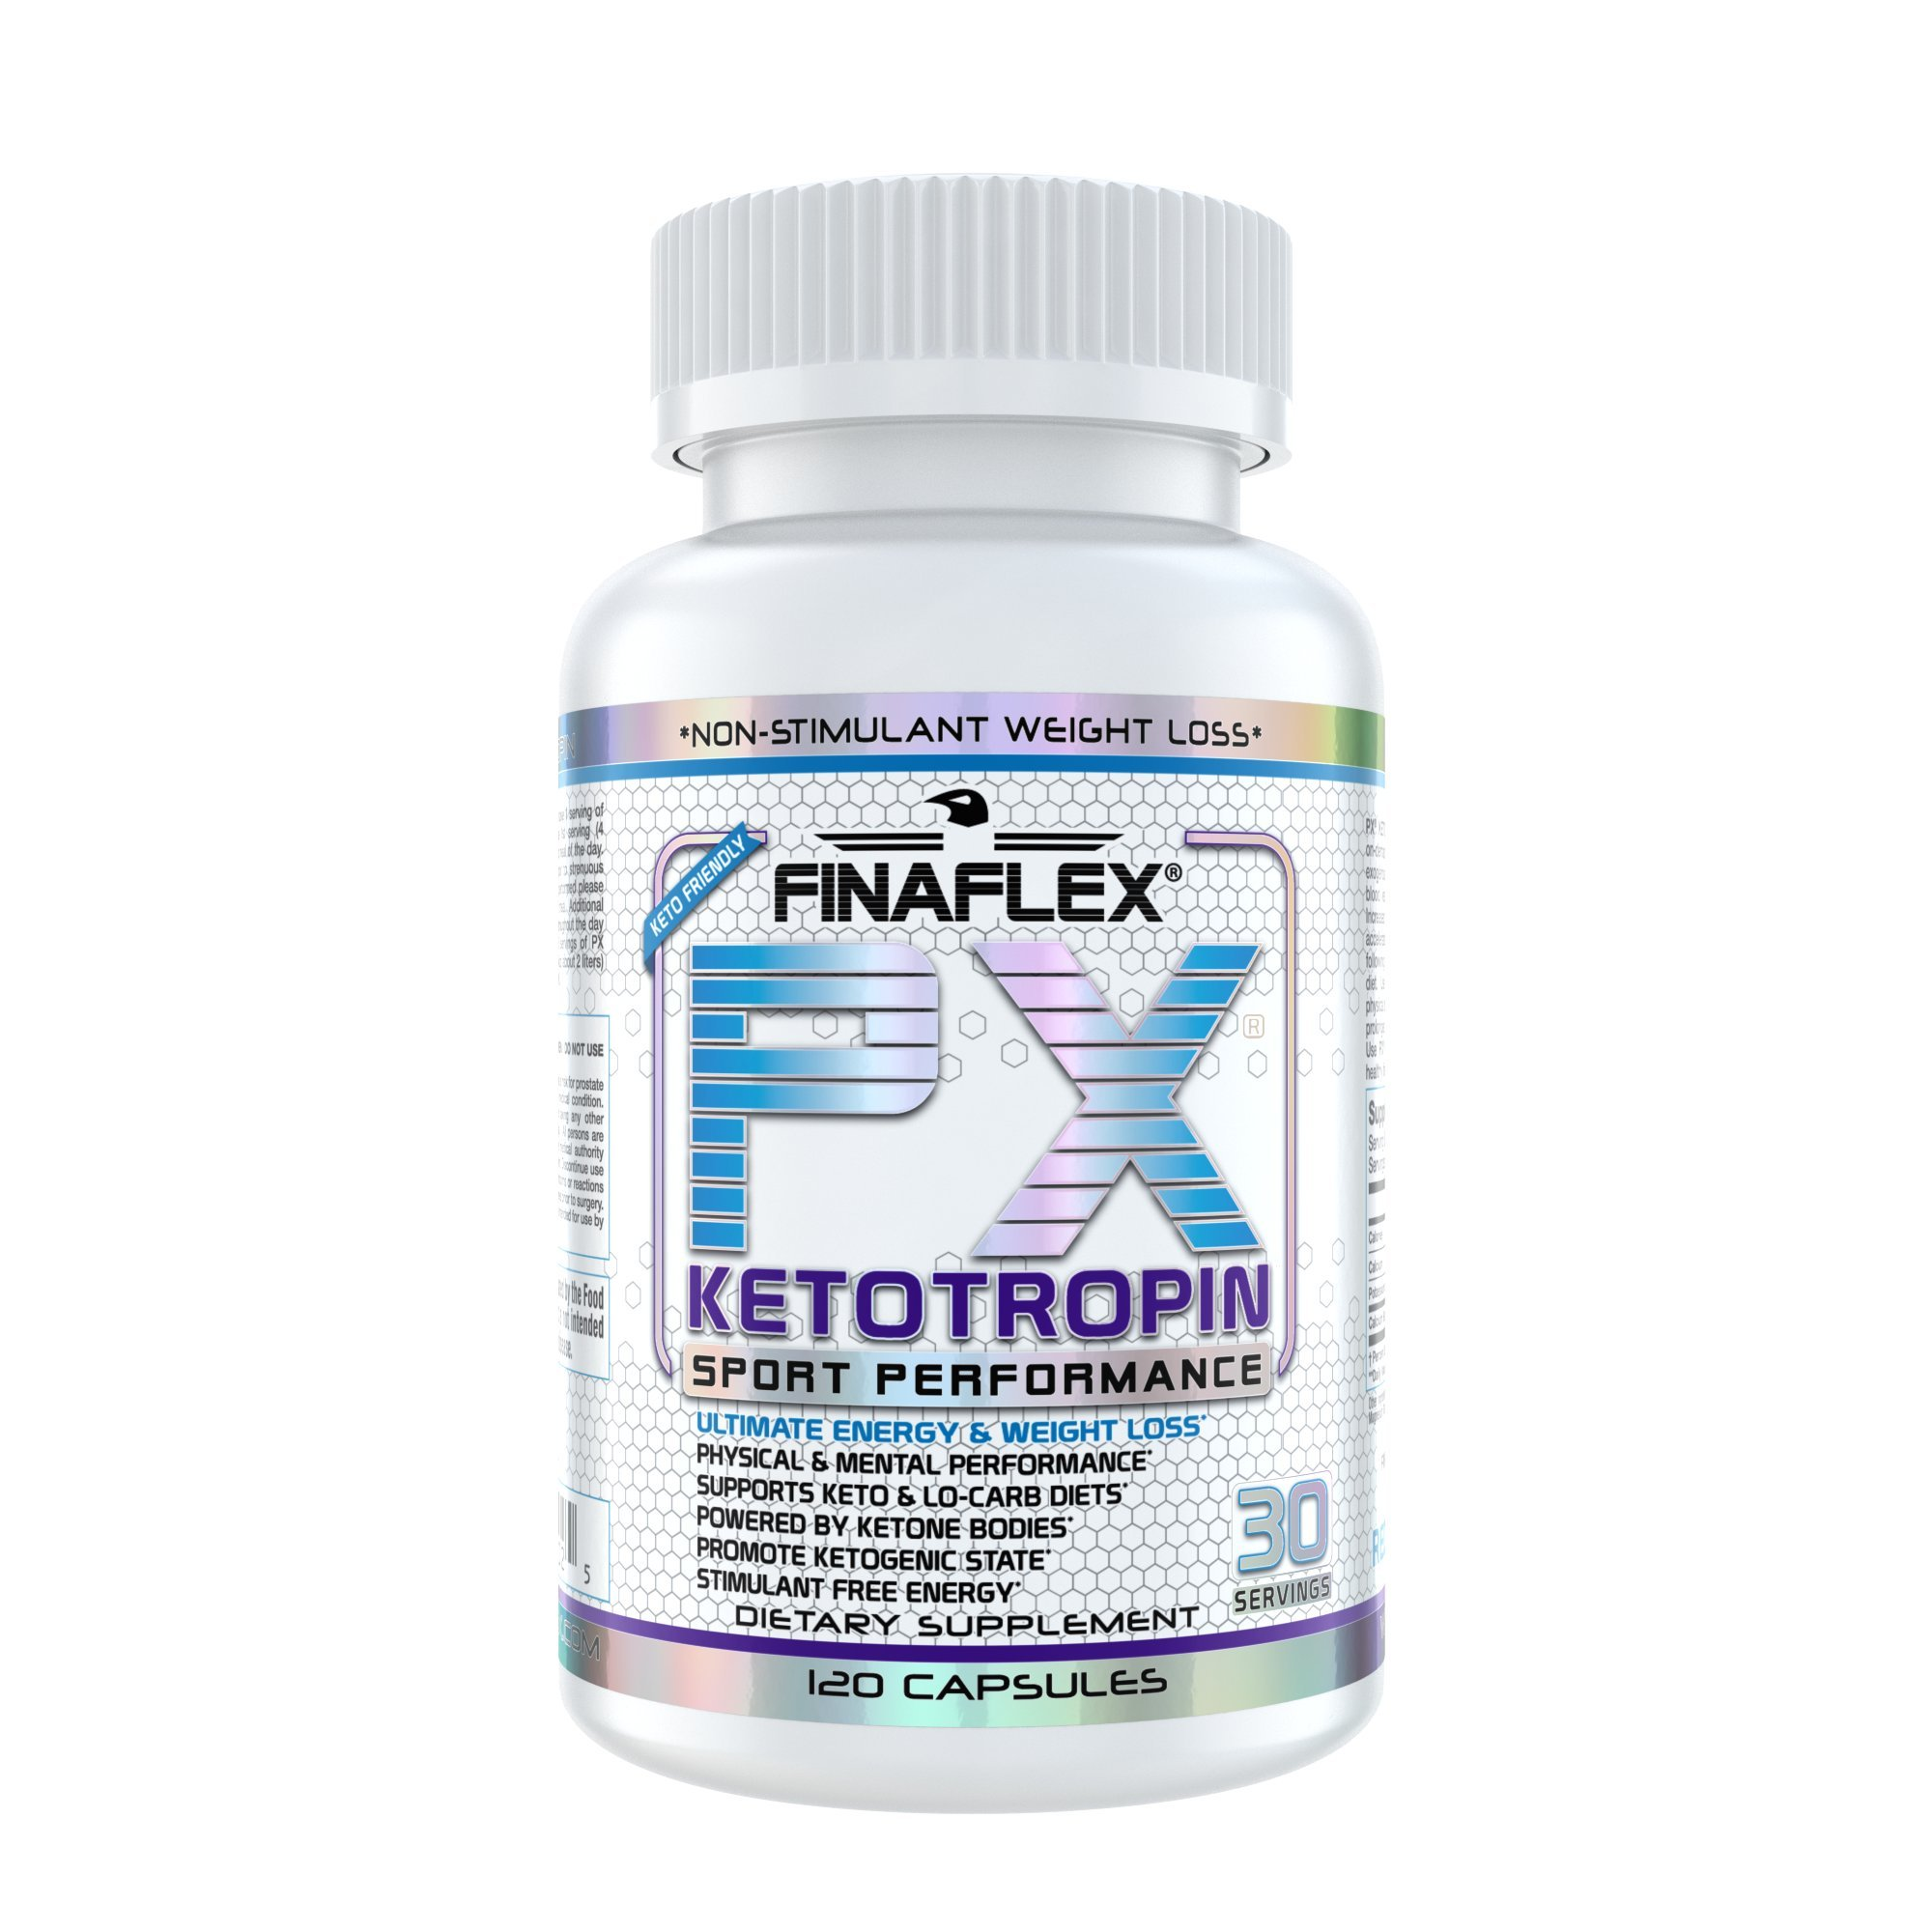 PX KETOTROPIN, 120 Capsules, BHB (Ketones), Built for the Ketogenic Dieter, Non-Stimulant Energy, Stimulant Free, Use While on Ketogenic Diet (KETO), Take Before Fasted Cardio for Energy, On the Go